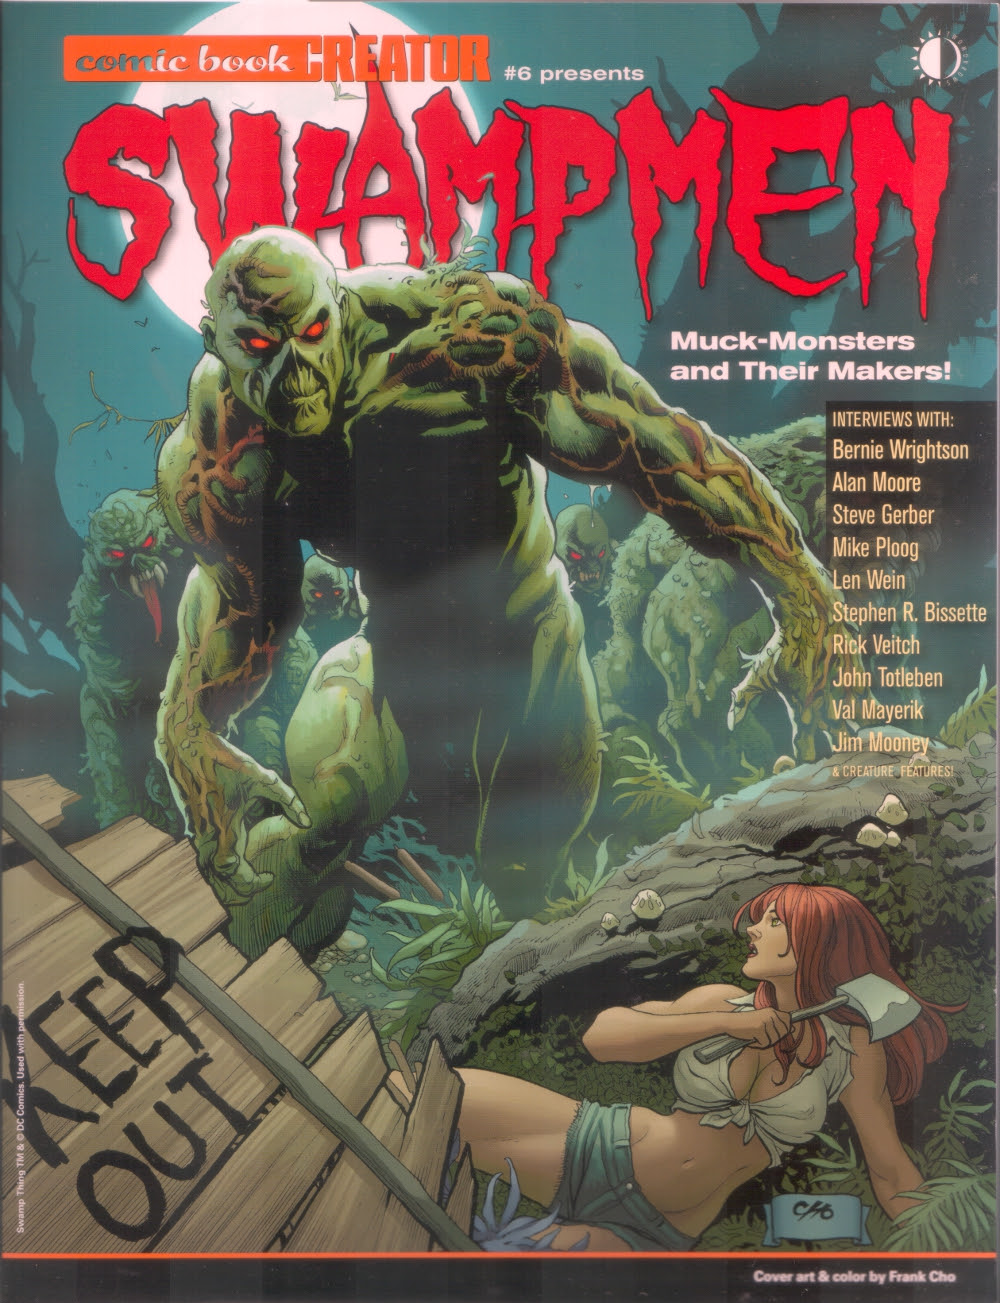 Comic Book Creator's SWAMP MEN